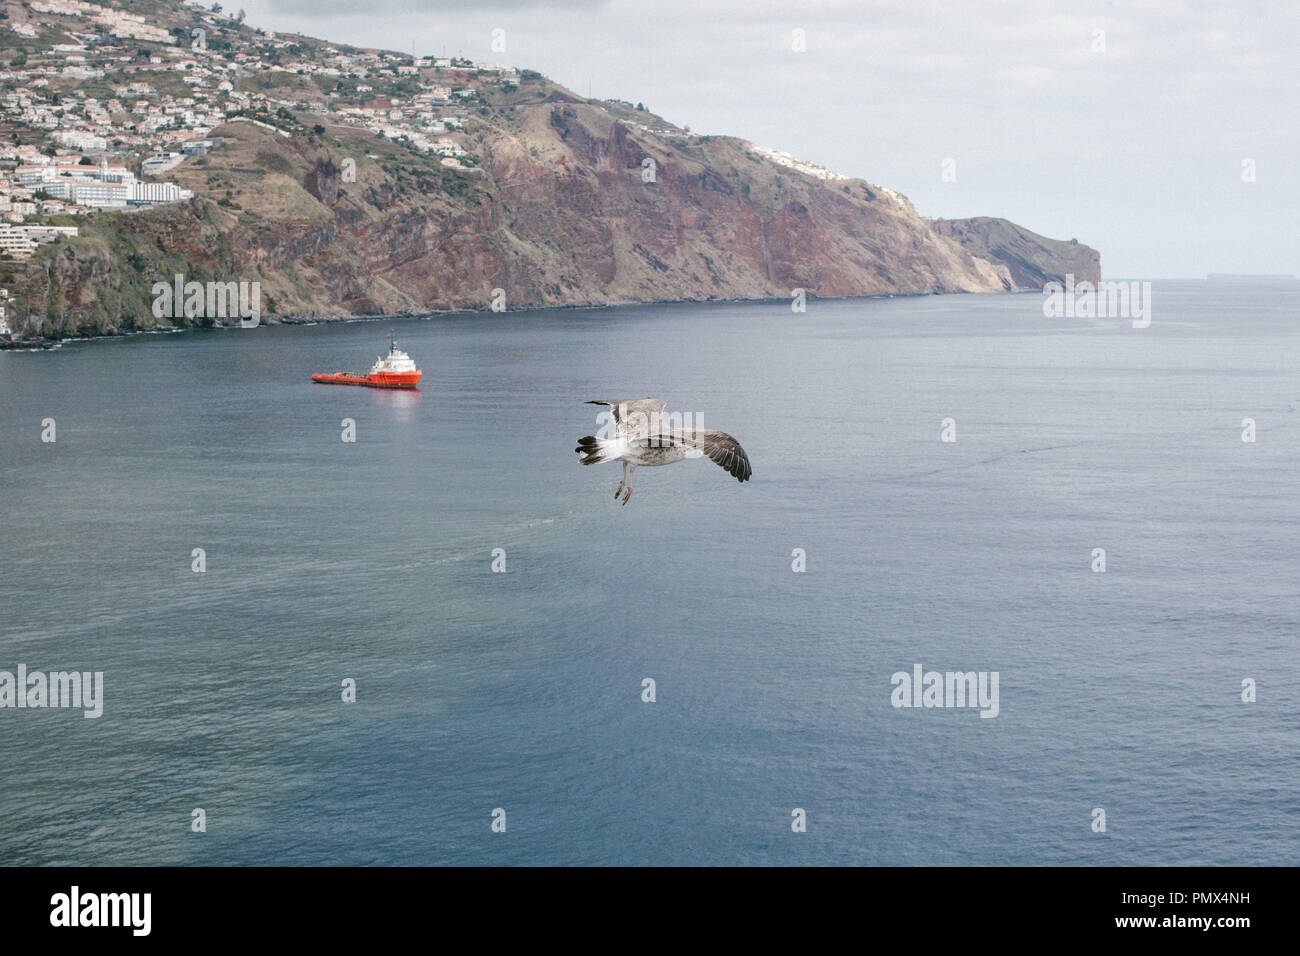 Sea birds (seagulls) flying high up over a calm blue sea with a boat below and the coastline in the background - Stock Image